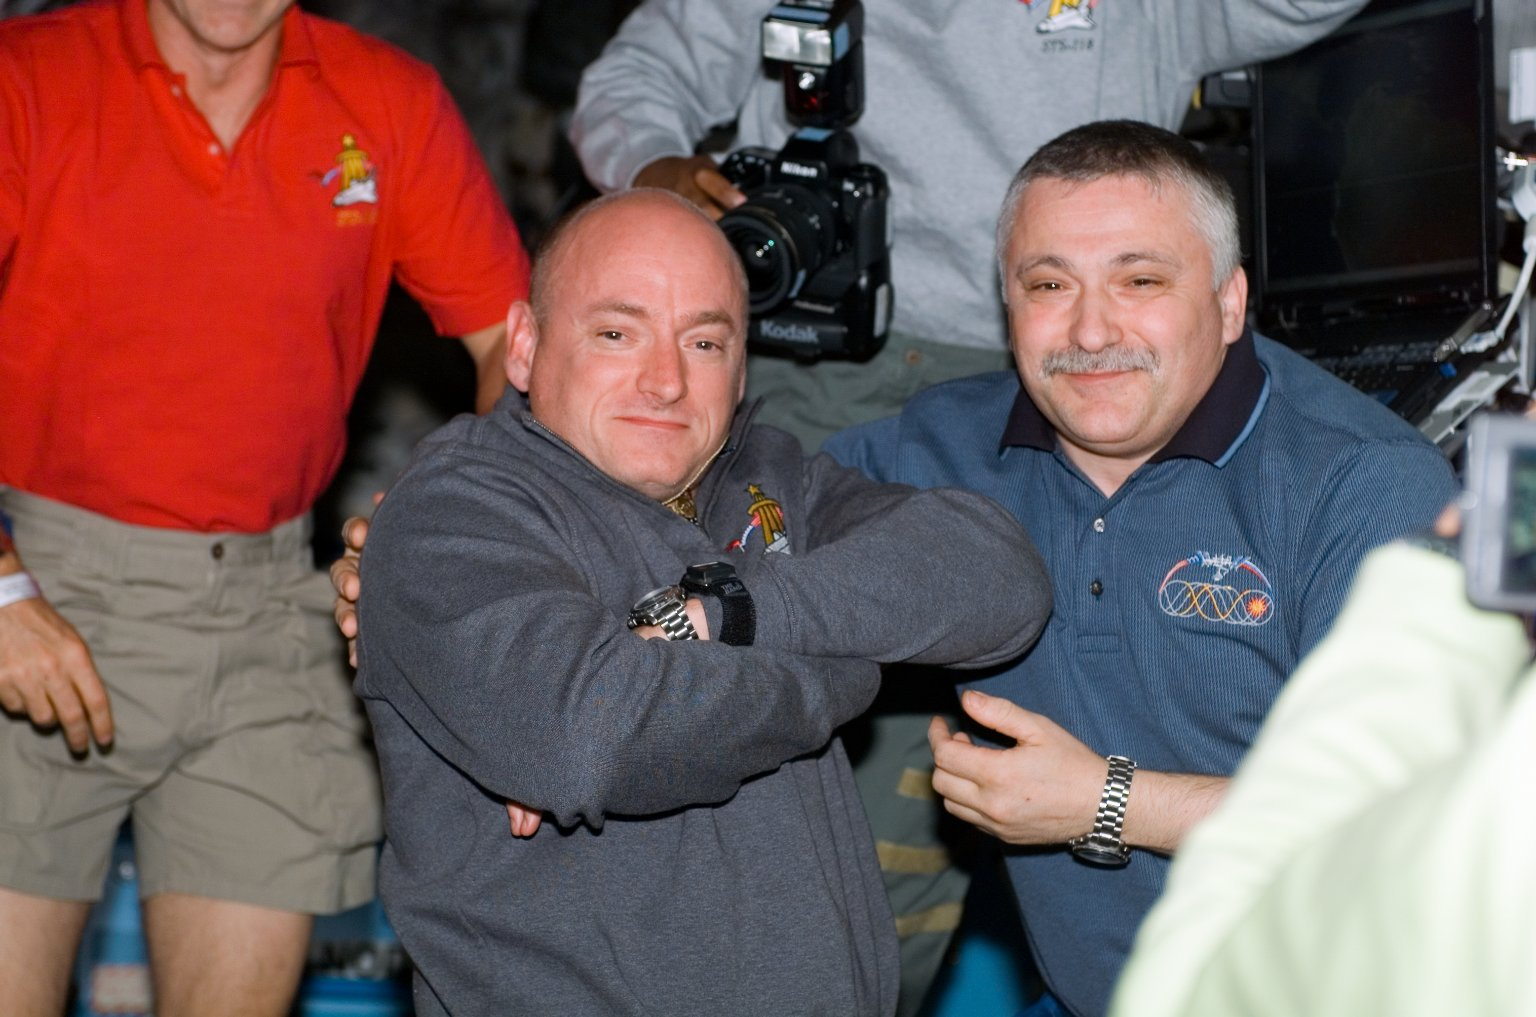 View of Kelly and Yurchikhin posing together during STS-118/Expedition 15 Joint Operations